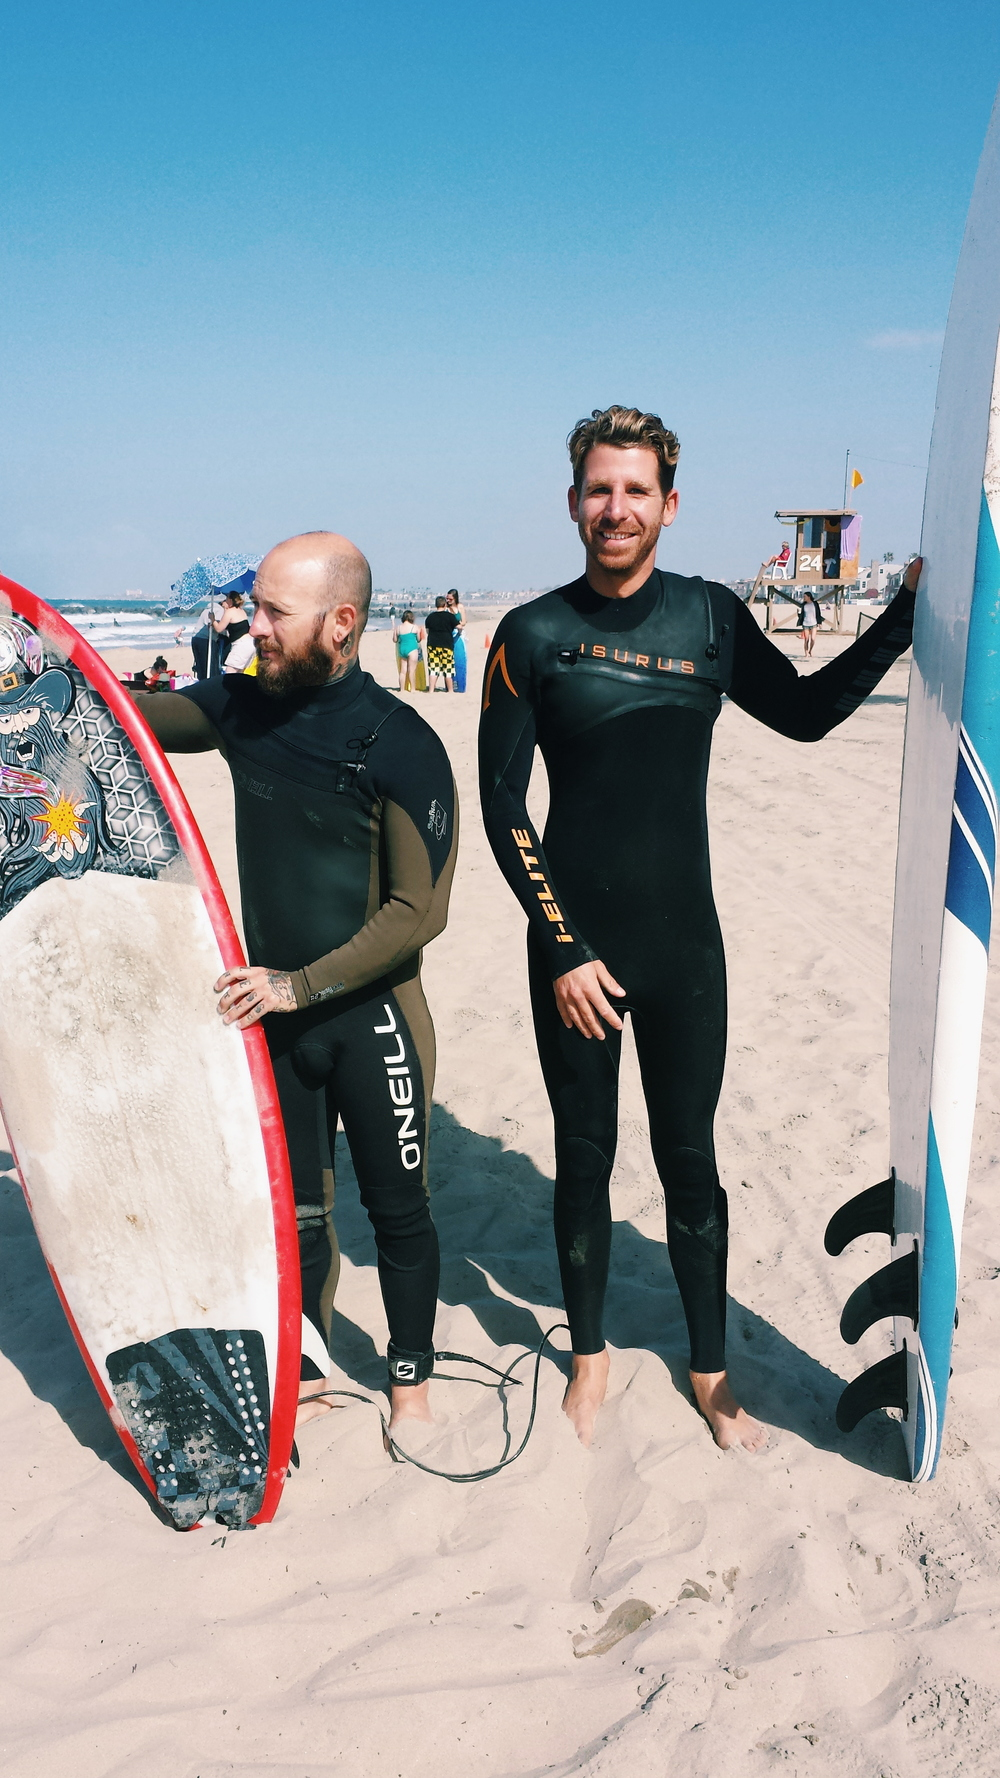 Newport Beach surf lessons, orange county surf lessons, surfing friends surf lessons